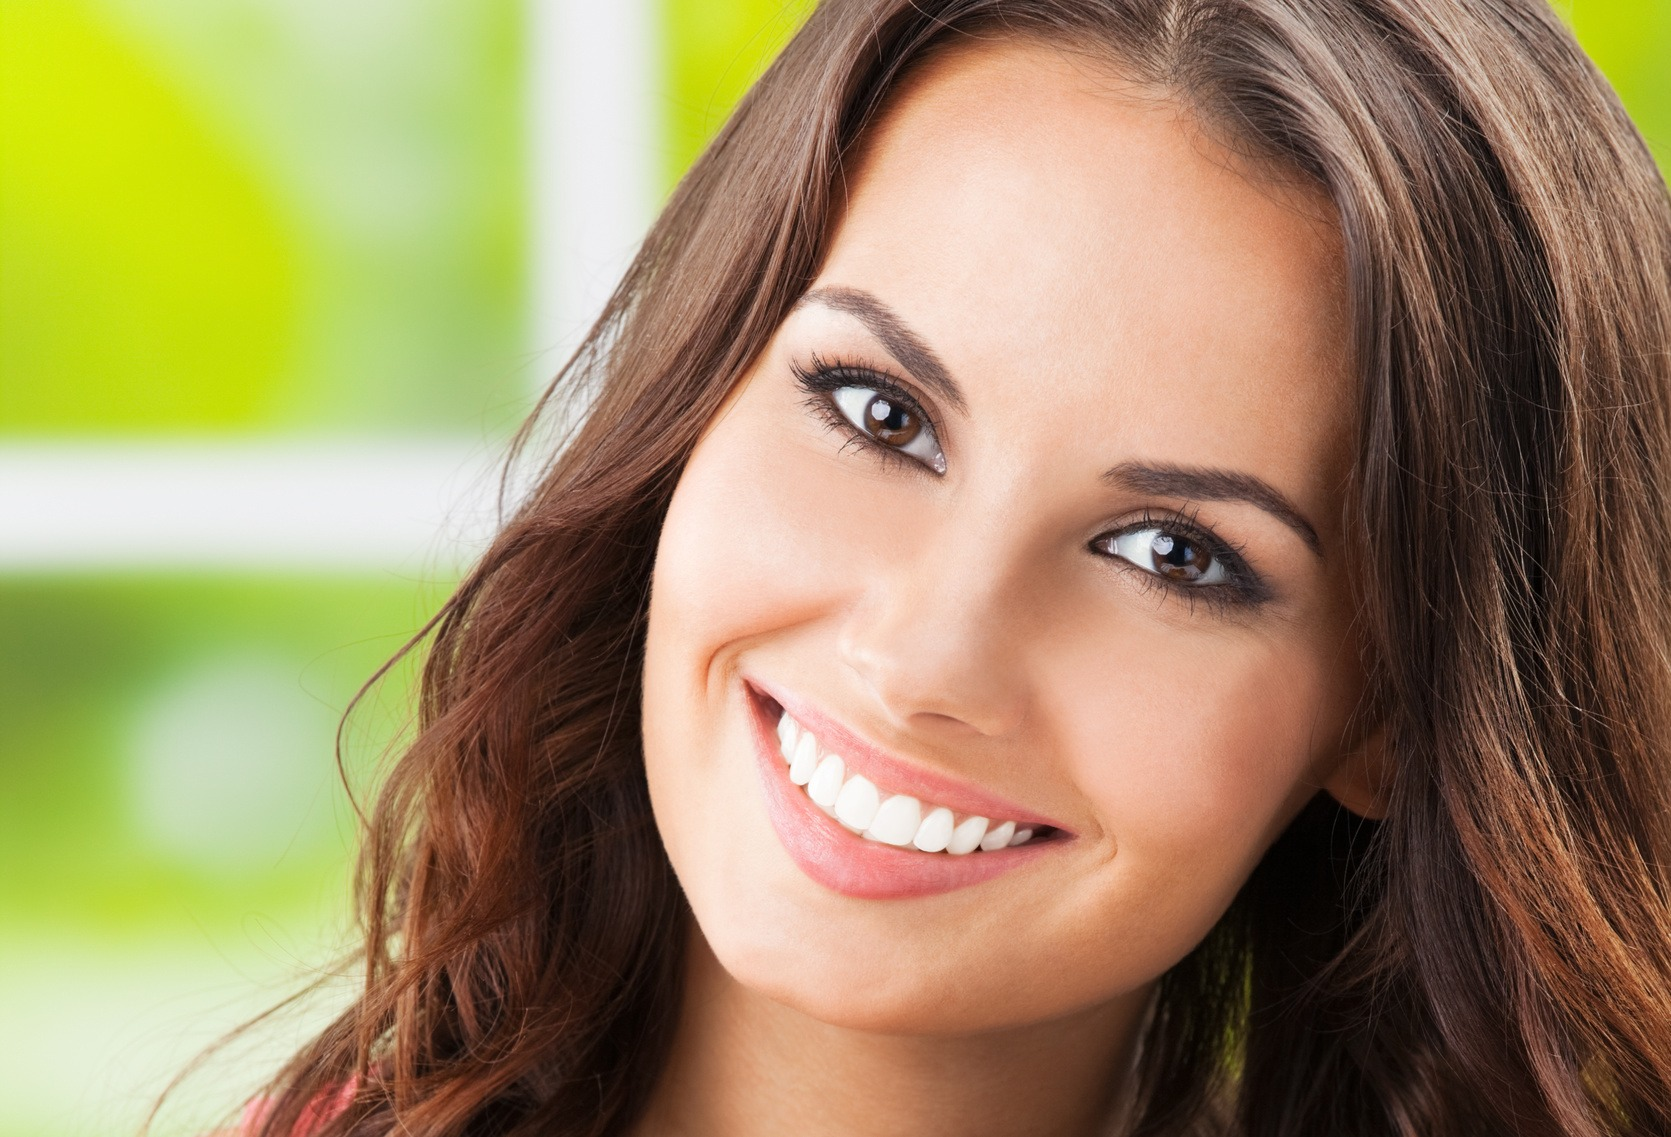 Some Amazing Benefits of Using Invisalign to Straighten Your Teeth